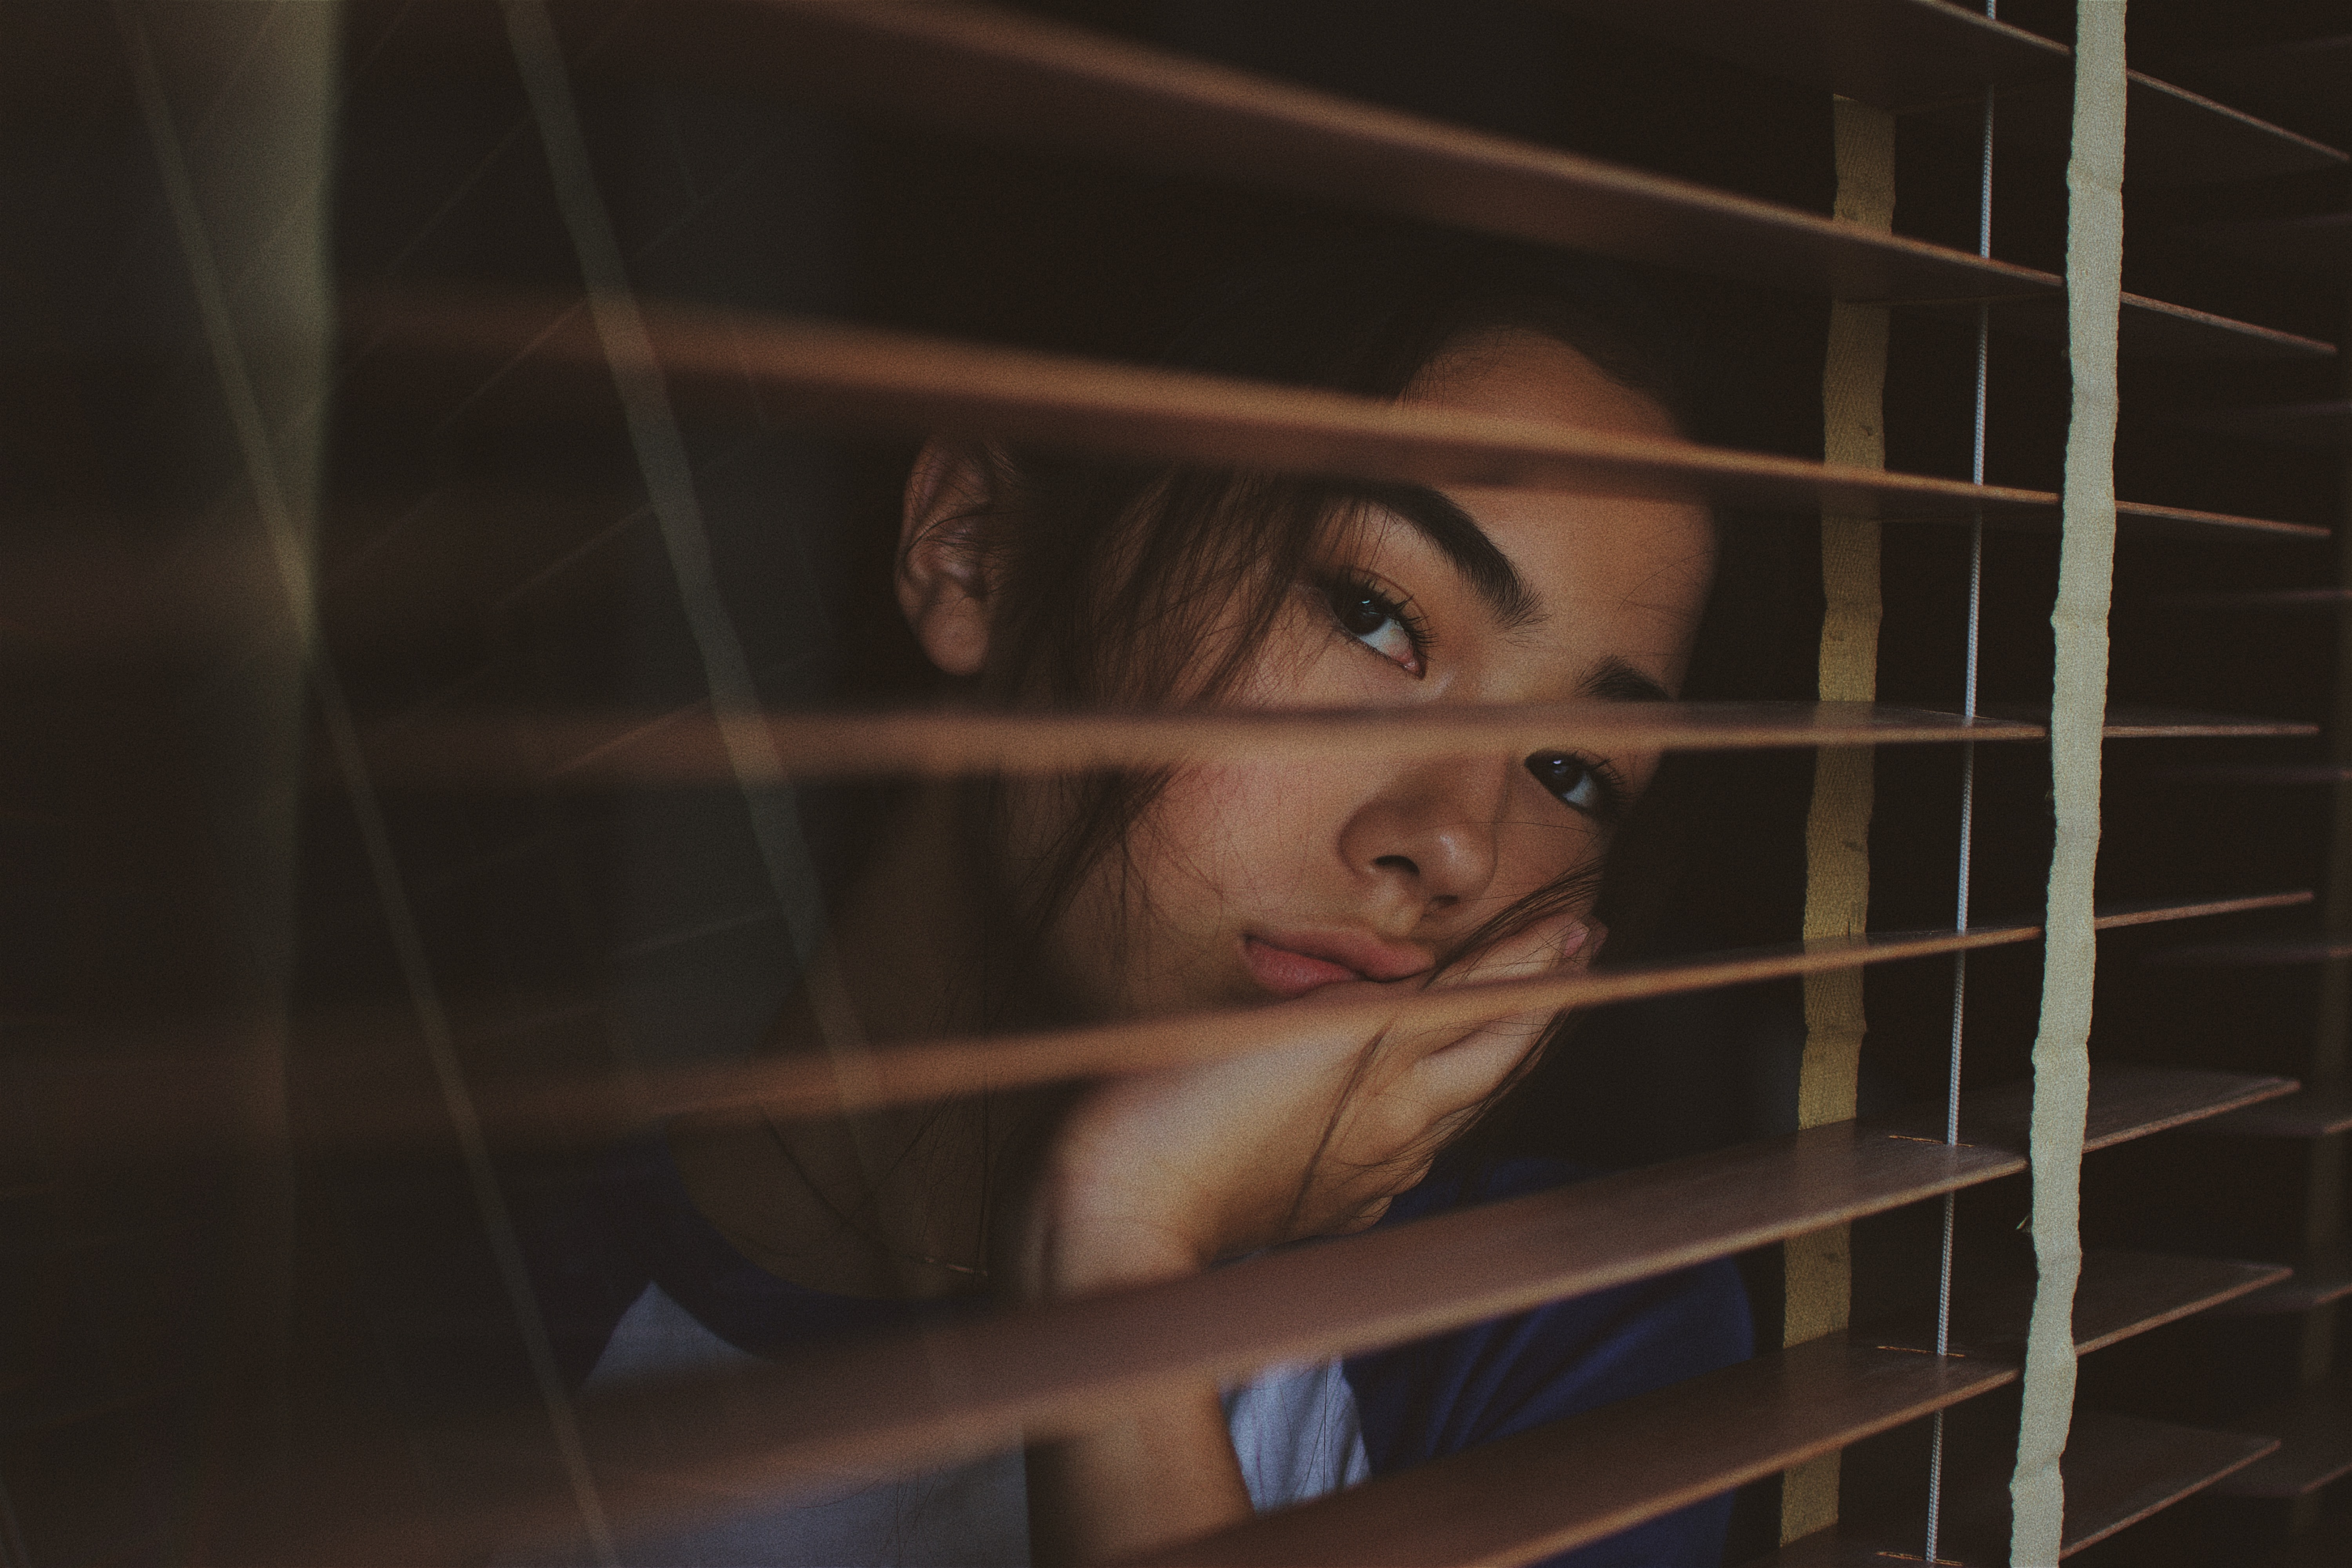 Is social isolation making society sick during quarantine?